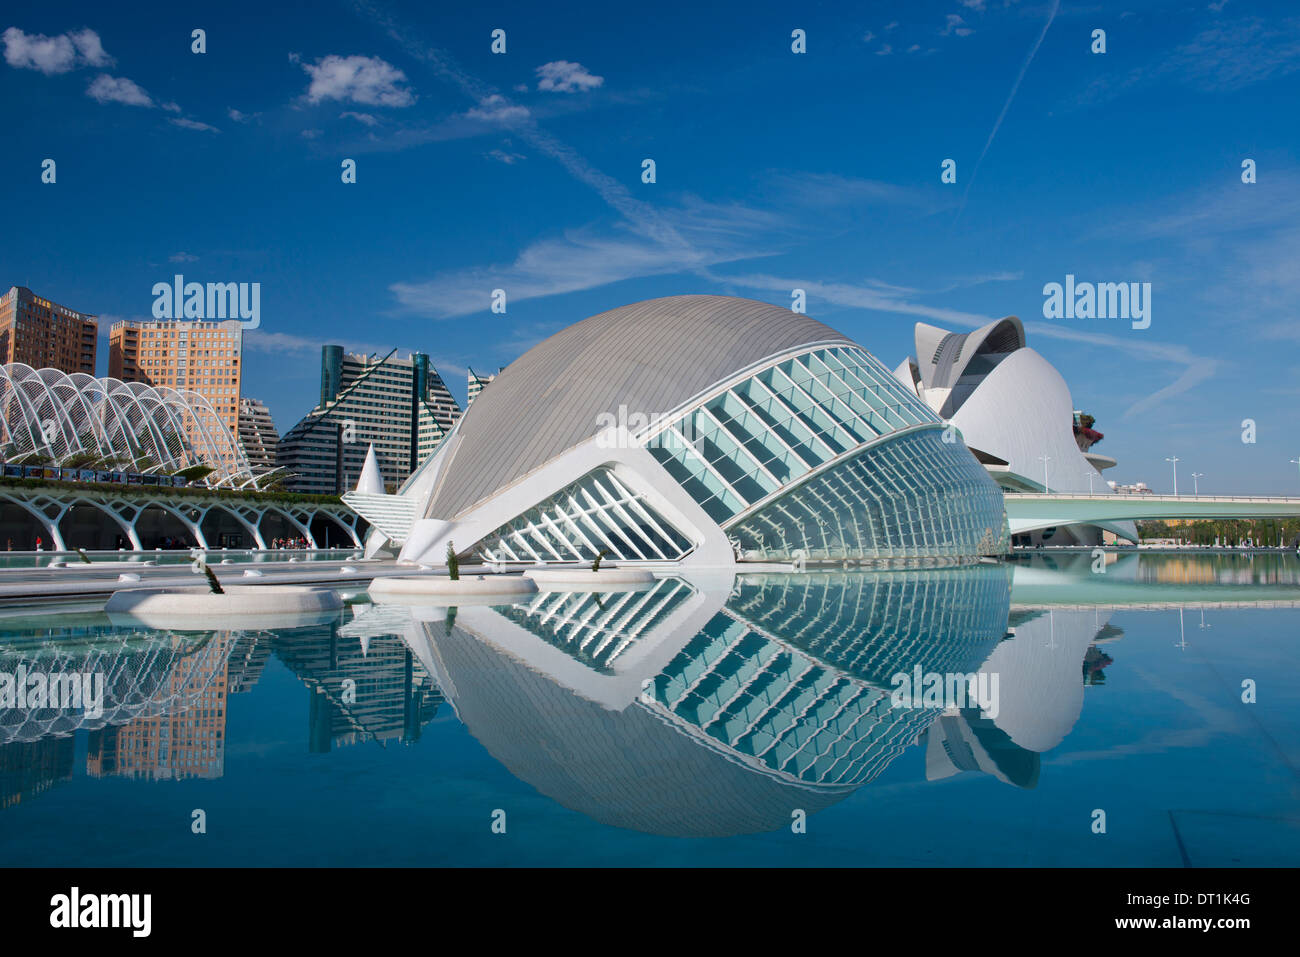 The Hemisferic building and reflecting pool in the Arts and Science Centre in Valencia, Valenciana, Spain, Europe - Stock Image